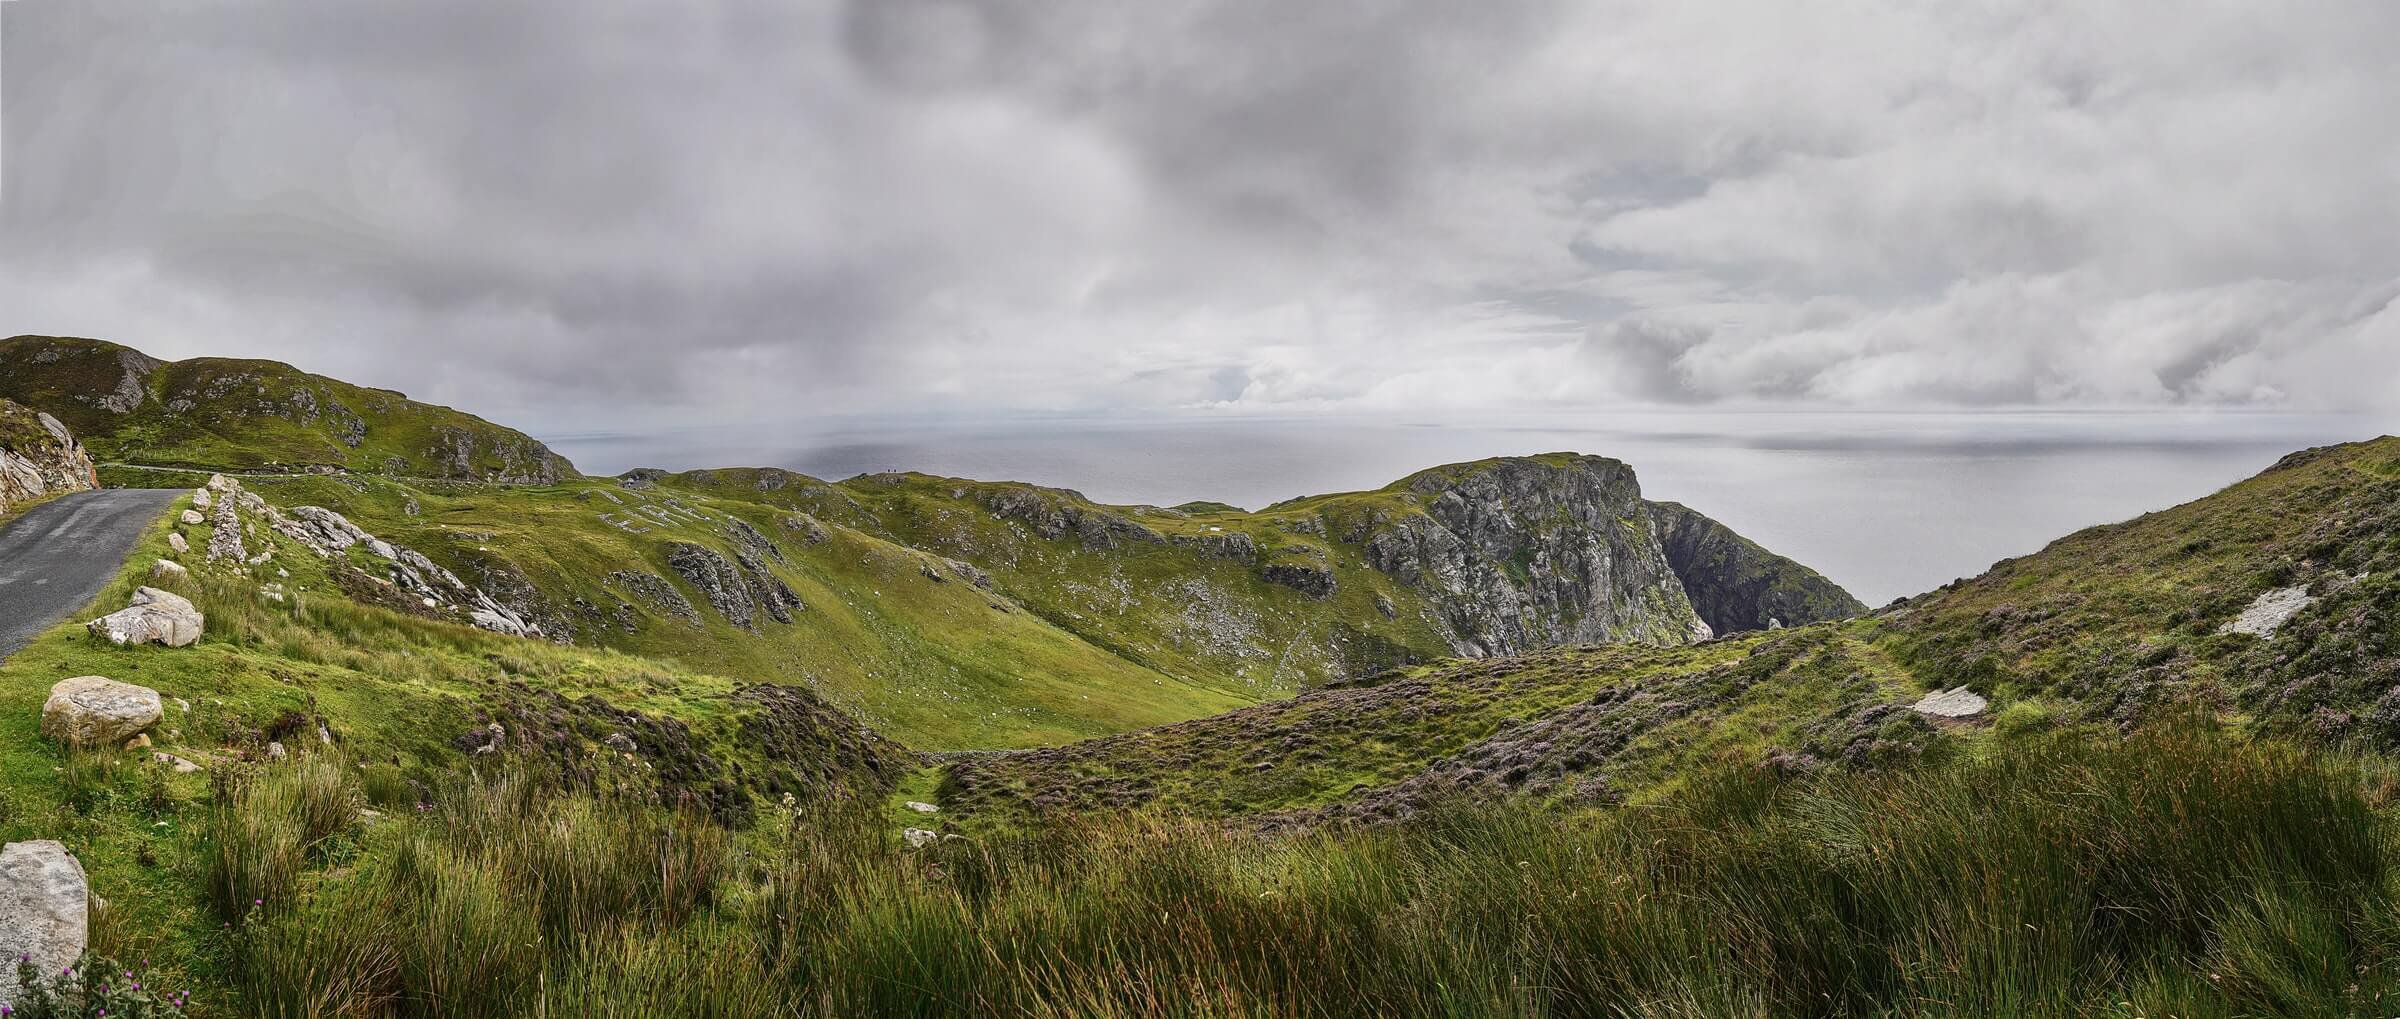 Rolling hills and road Sliabh Liag Donegal